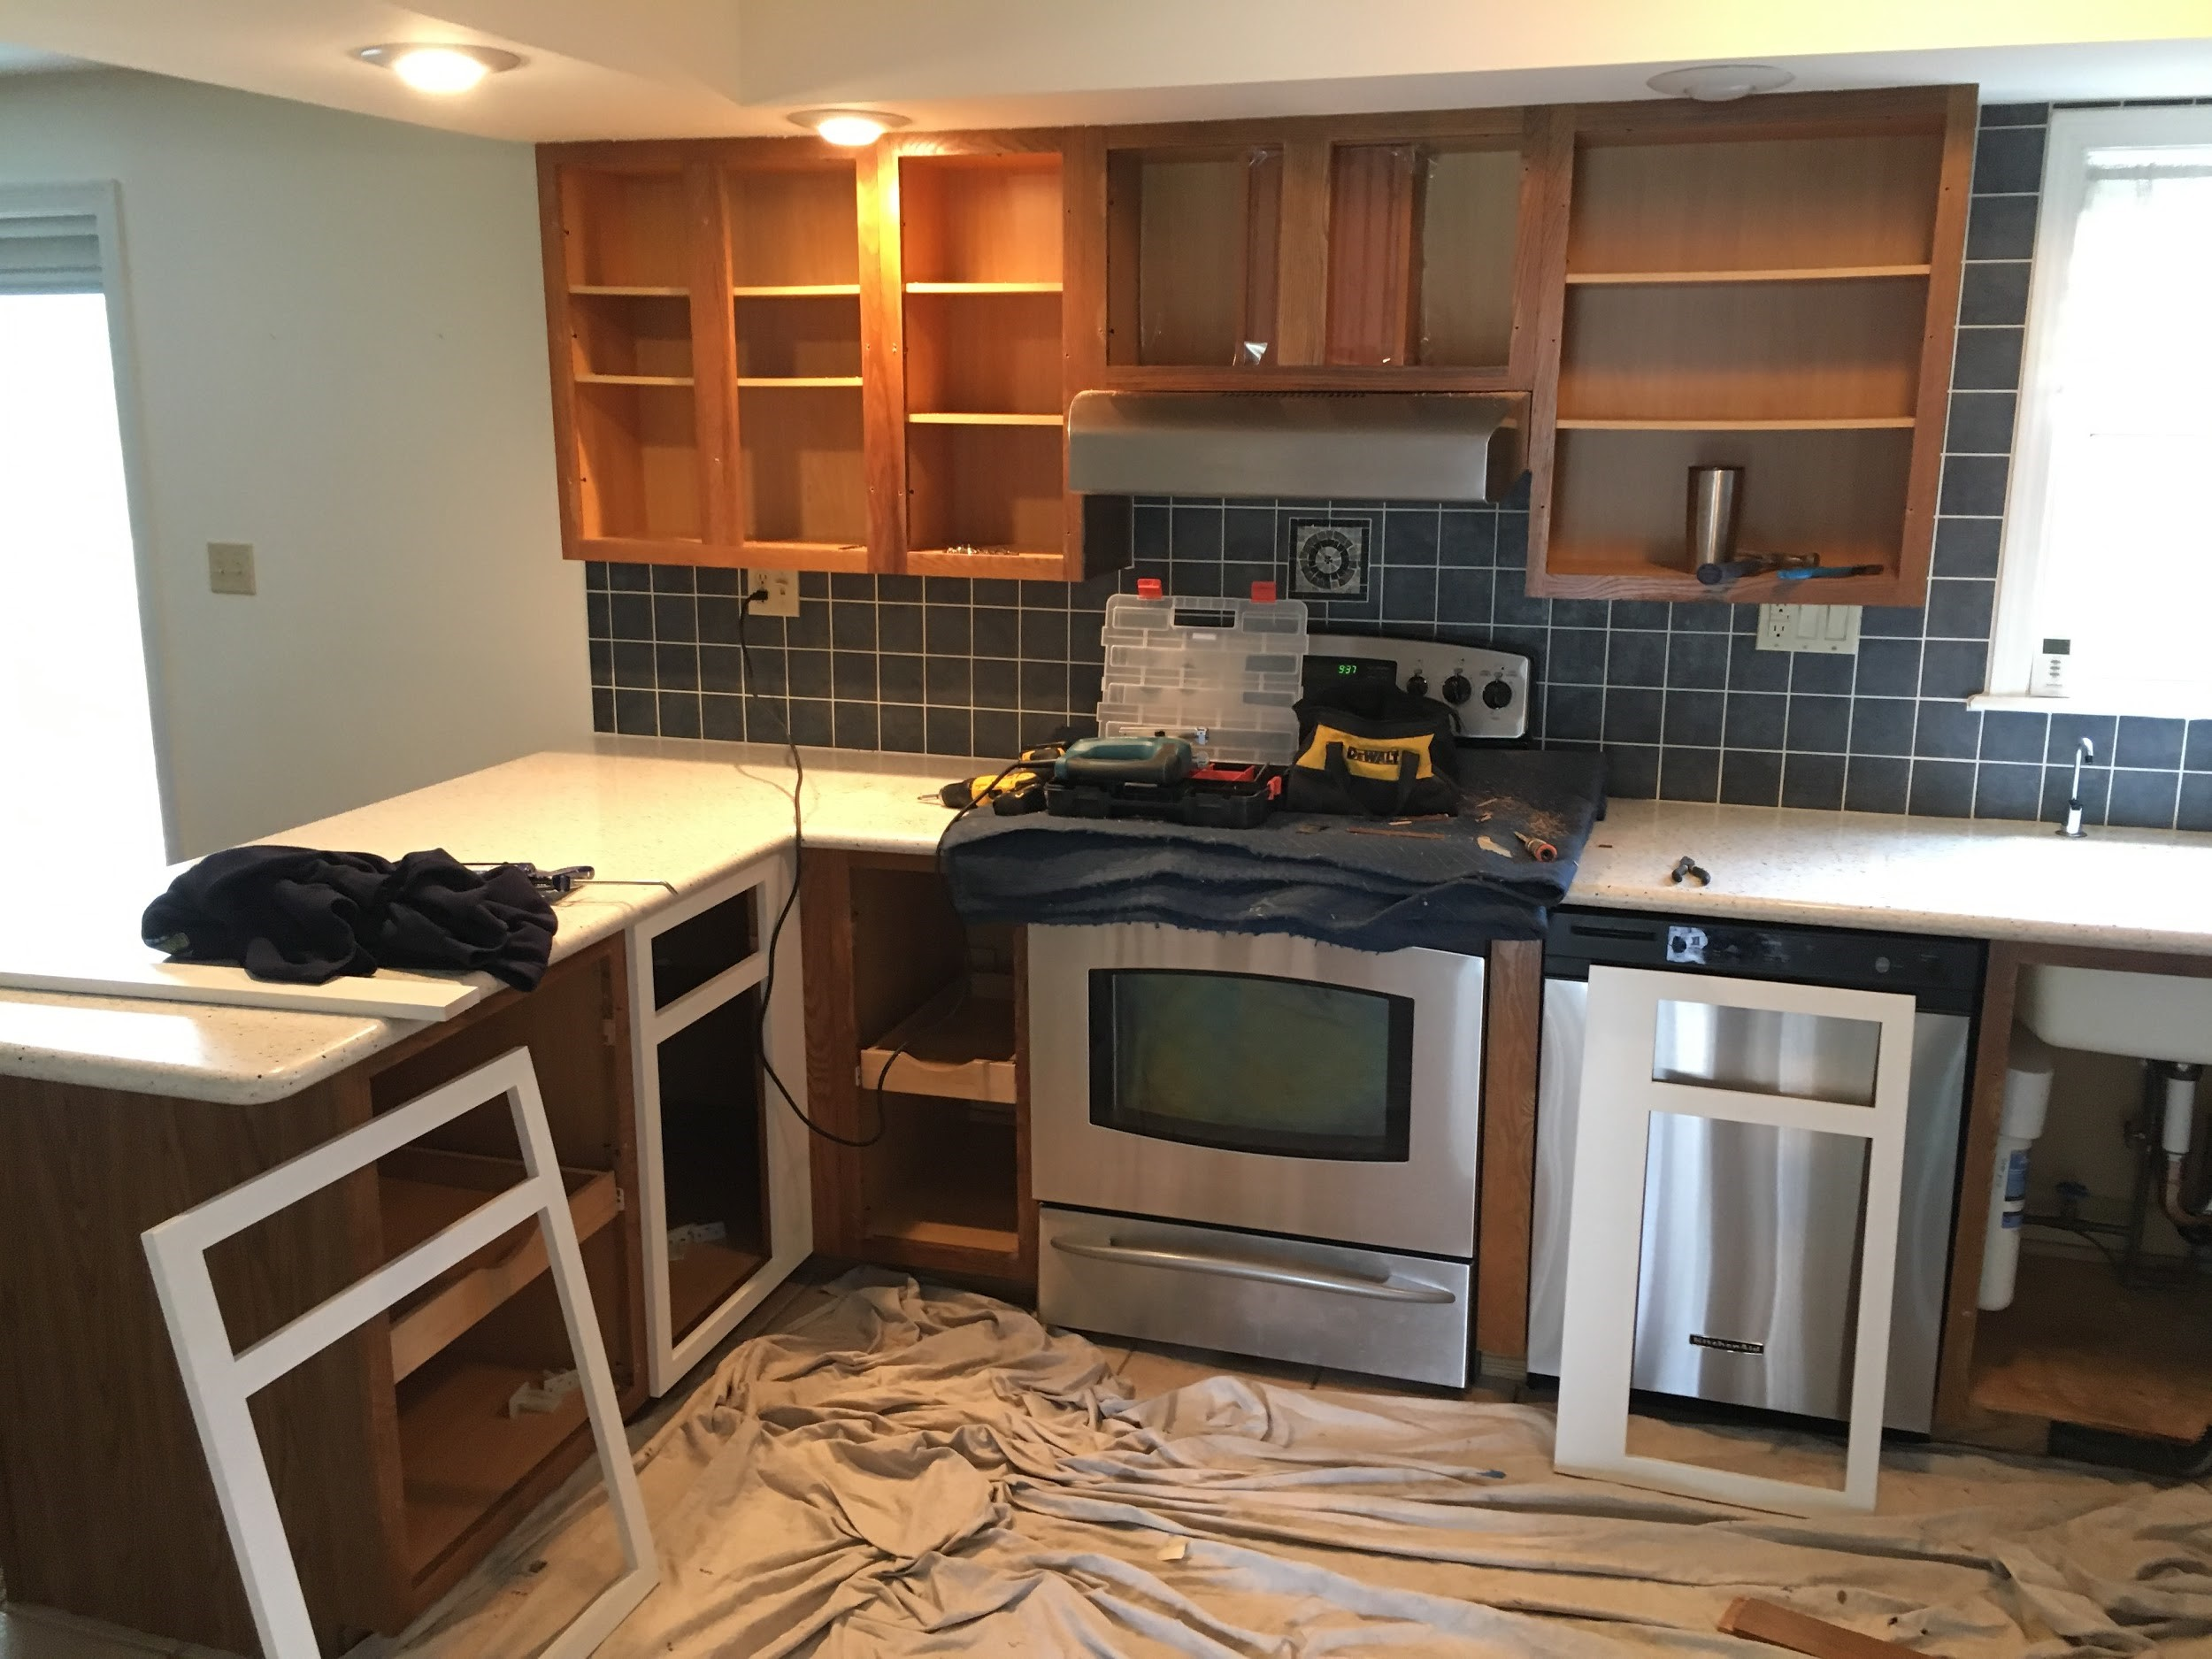 Refacing Kitchen Cabinets Cost Estimate Kitchen Cabinet Refacing